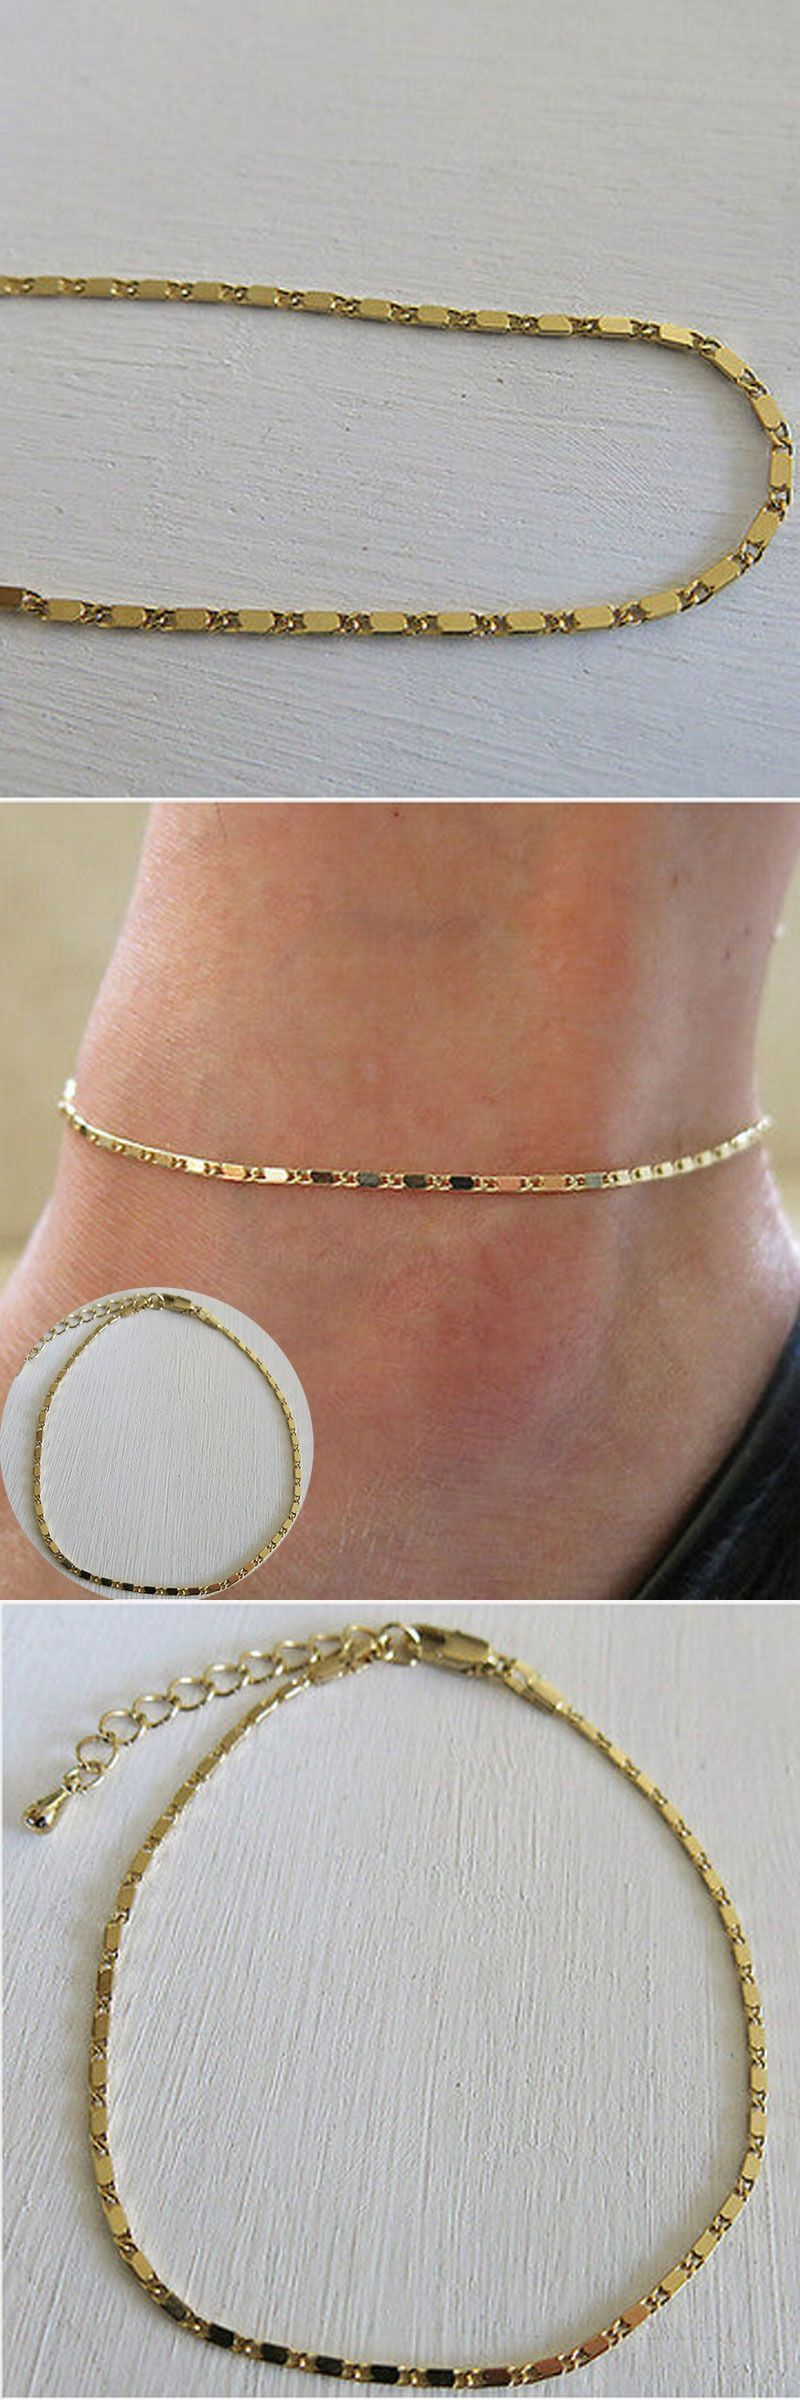 bracelets ankle jewelry on anklet adjustable product bracelet overstock silver shipping watches free chain multi over orders